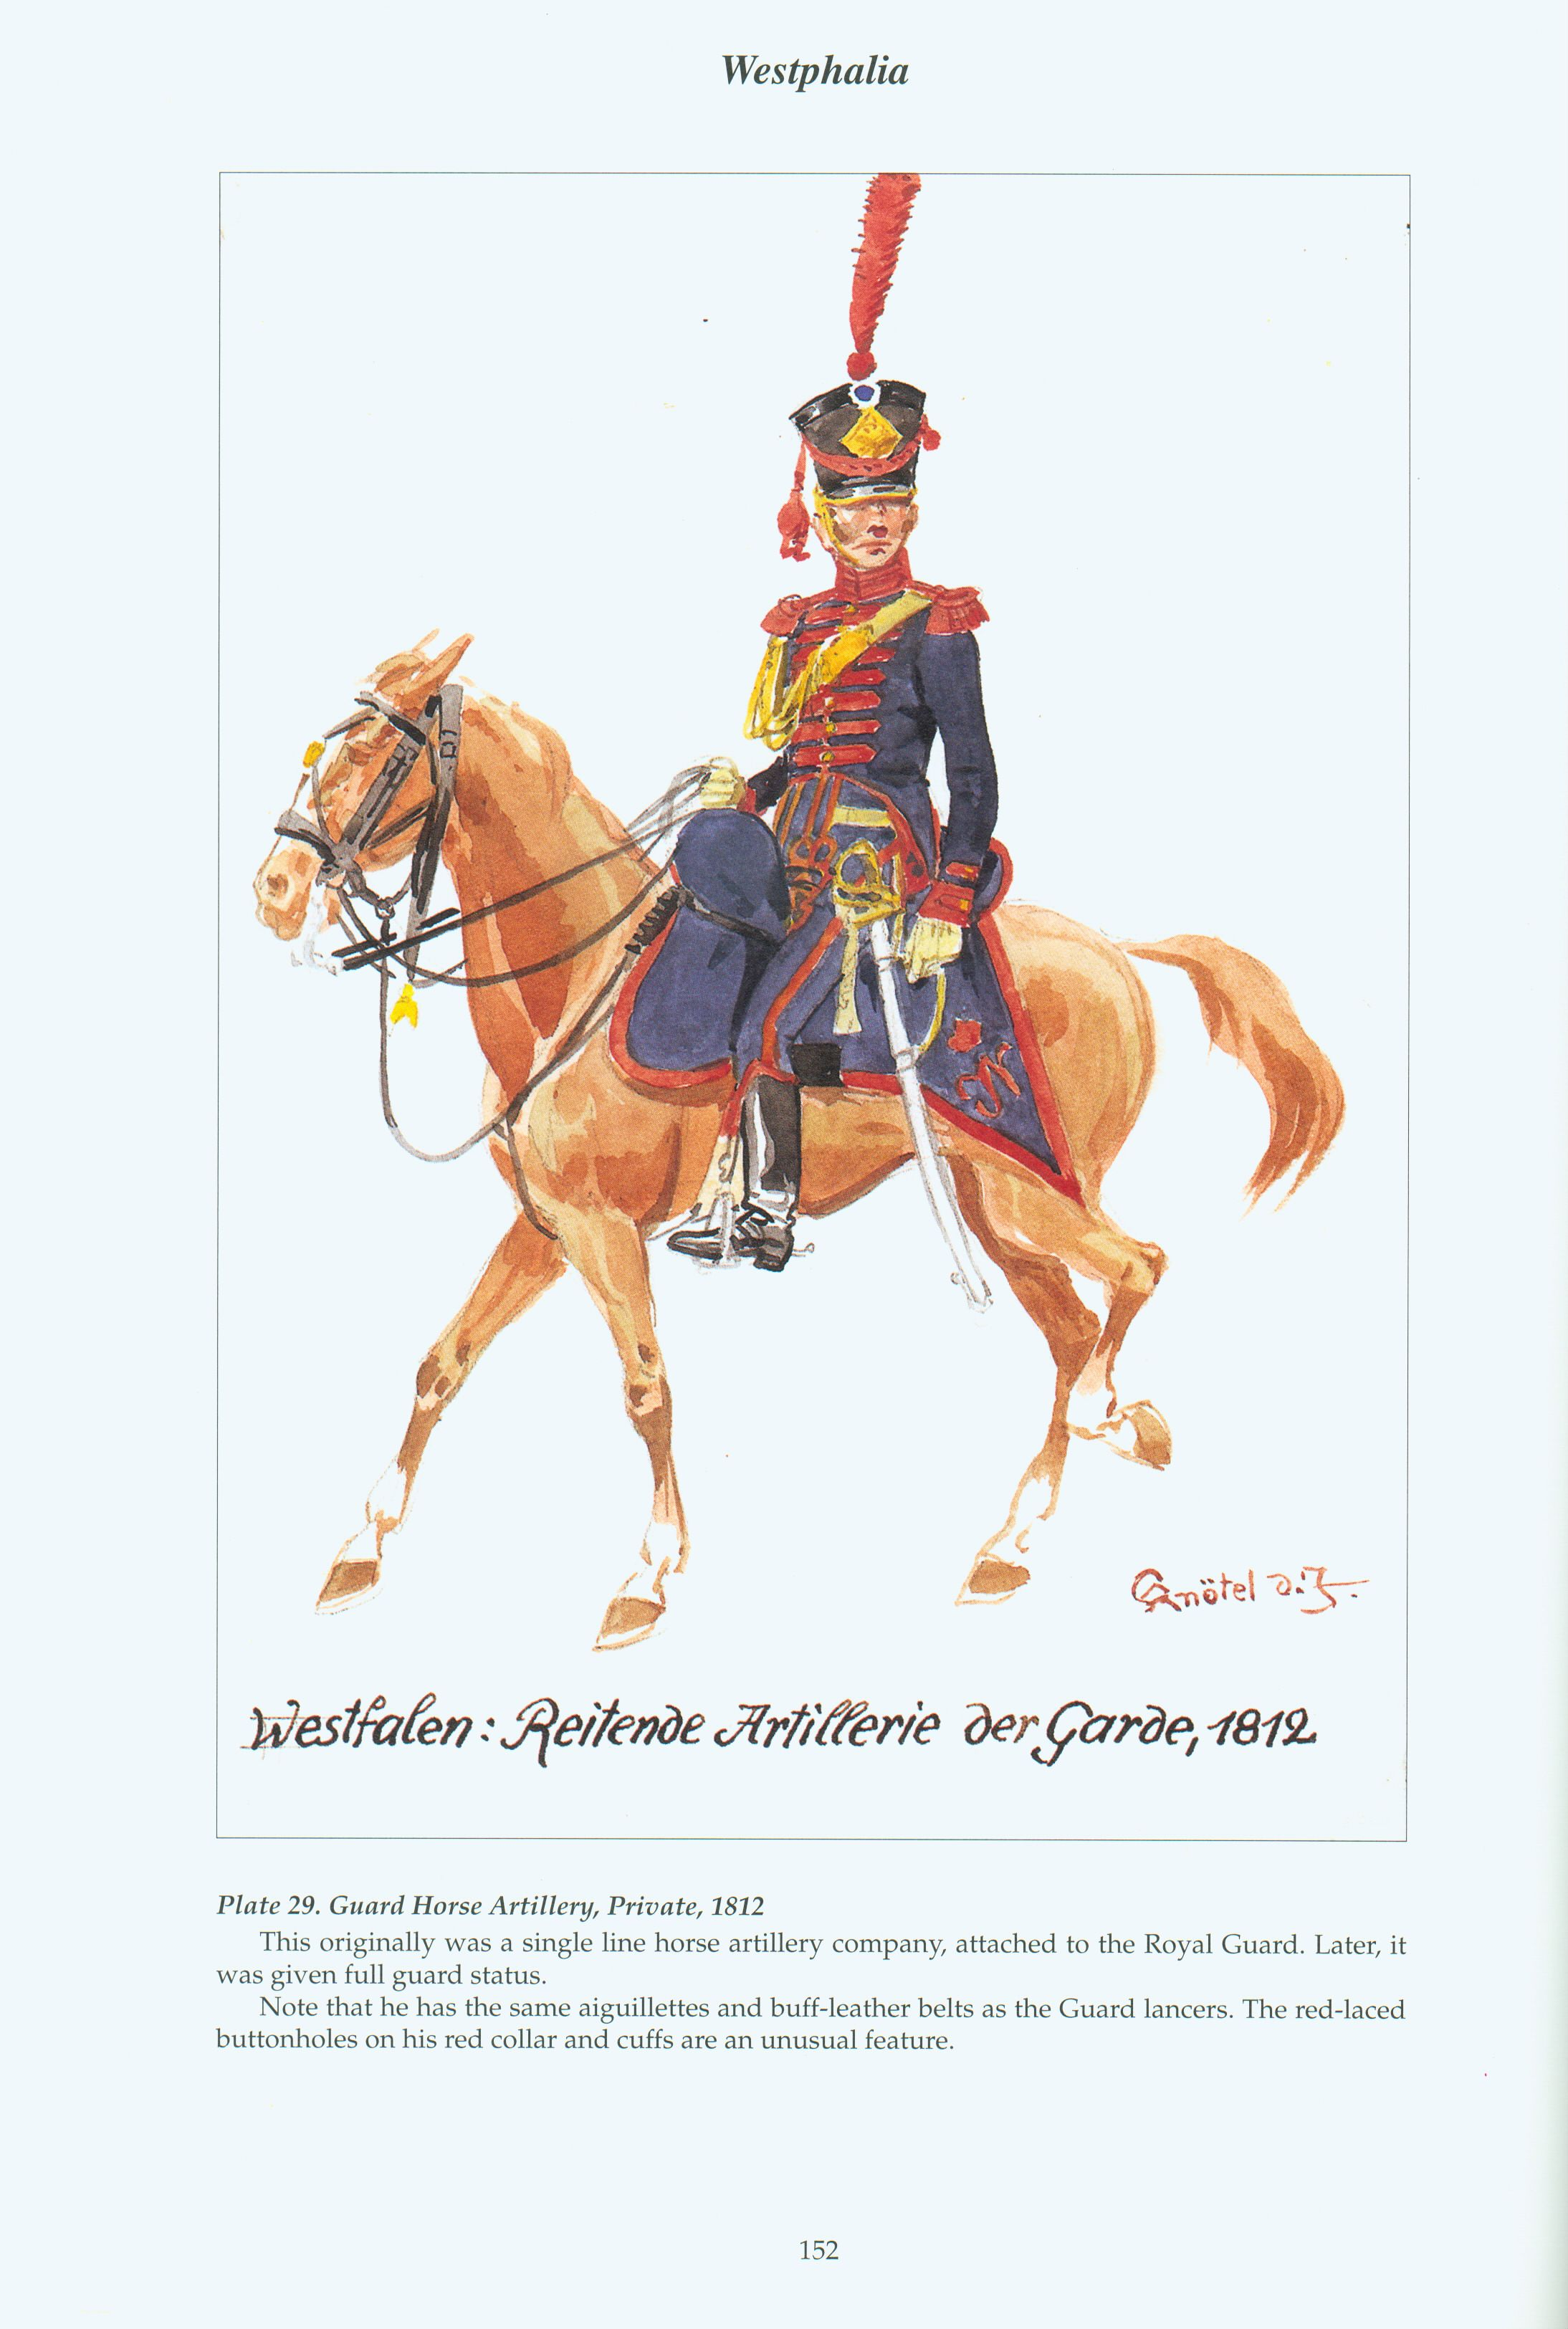 The Confederation of the Rhine - Westphalia: Plate 29. Guard Horse Artillery, Private, 1812